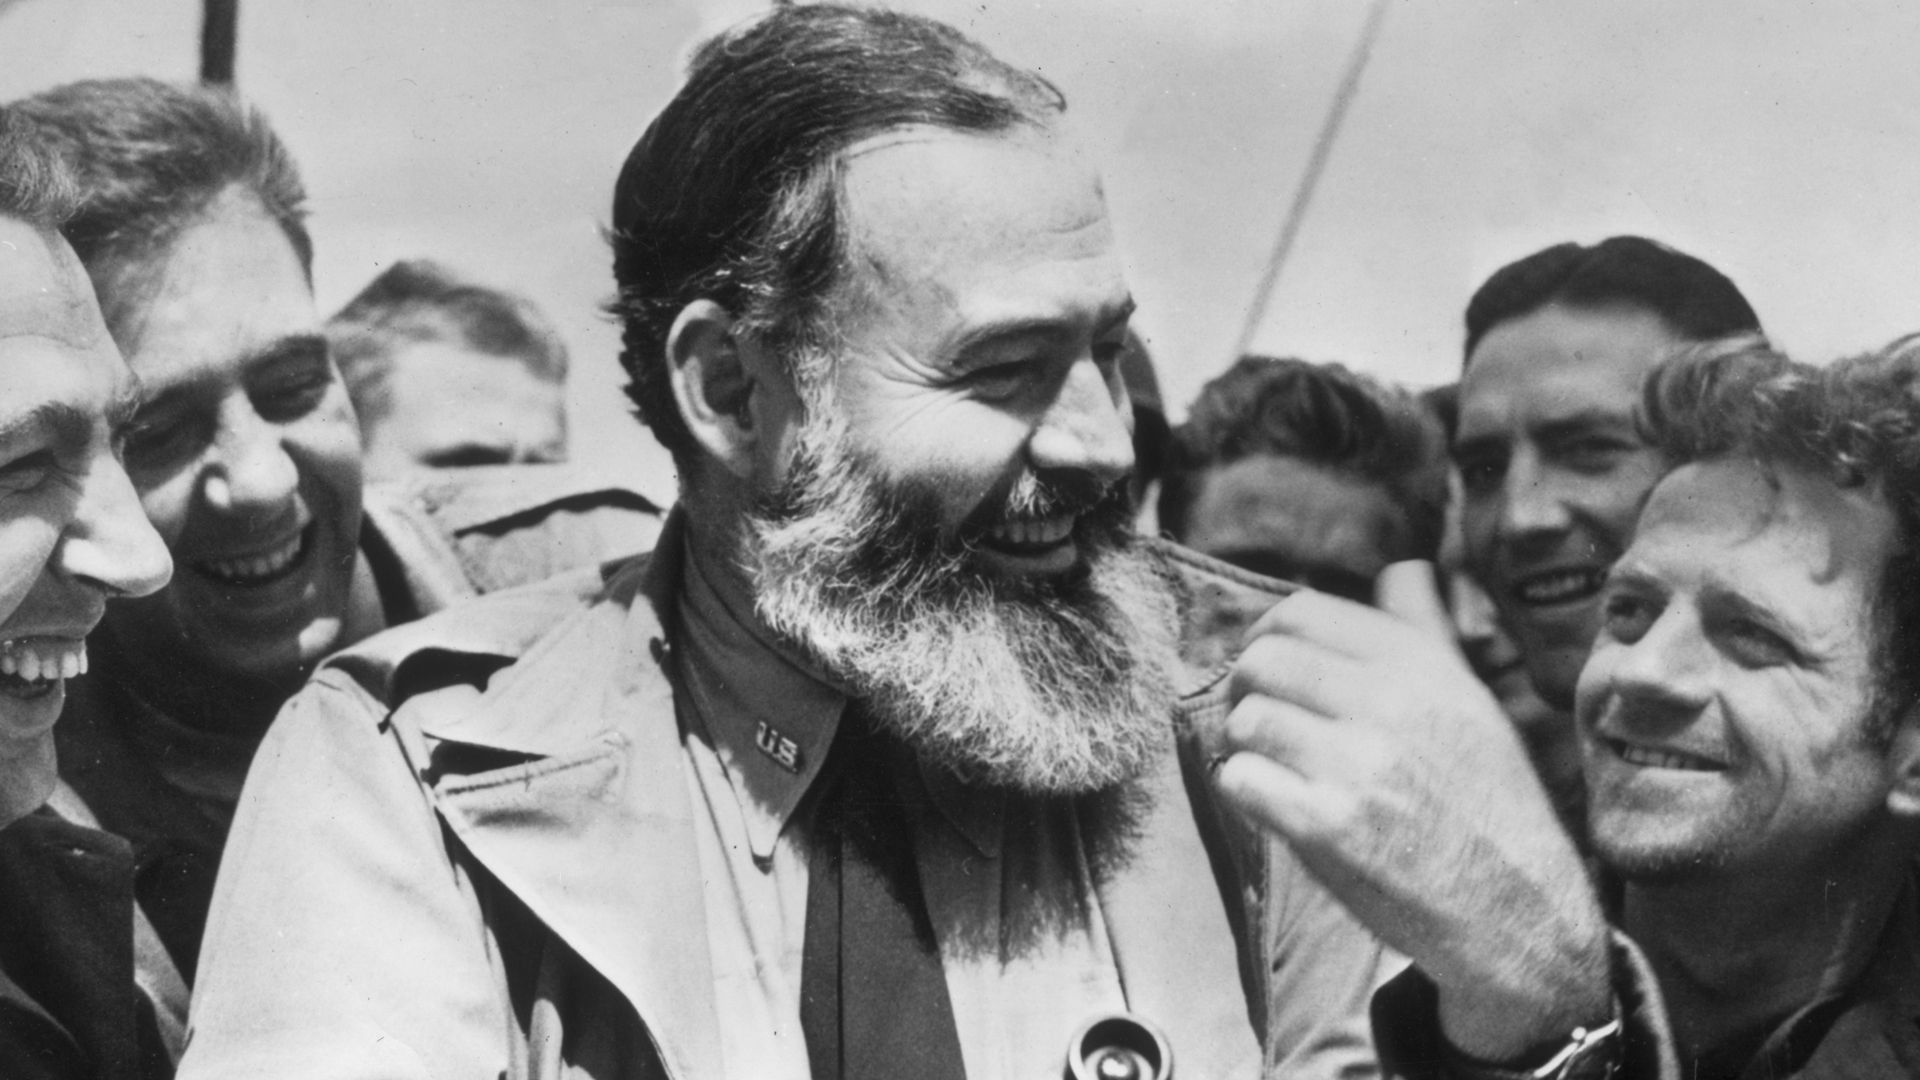 Ernest Hemingway is seen travelling with U.S. soldiers, in his capacity as war correspondent, on their way to Normandy for the D-Day landings. (Credit: Central Press/Getty Images)